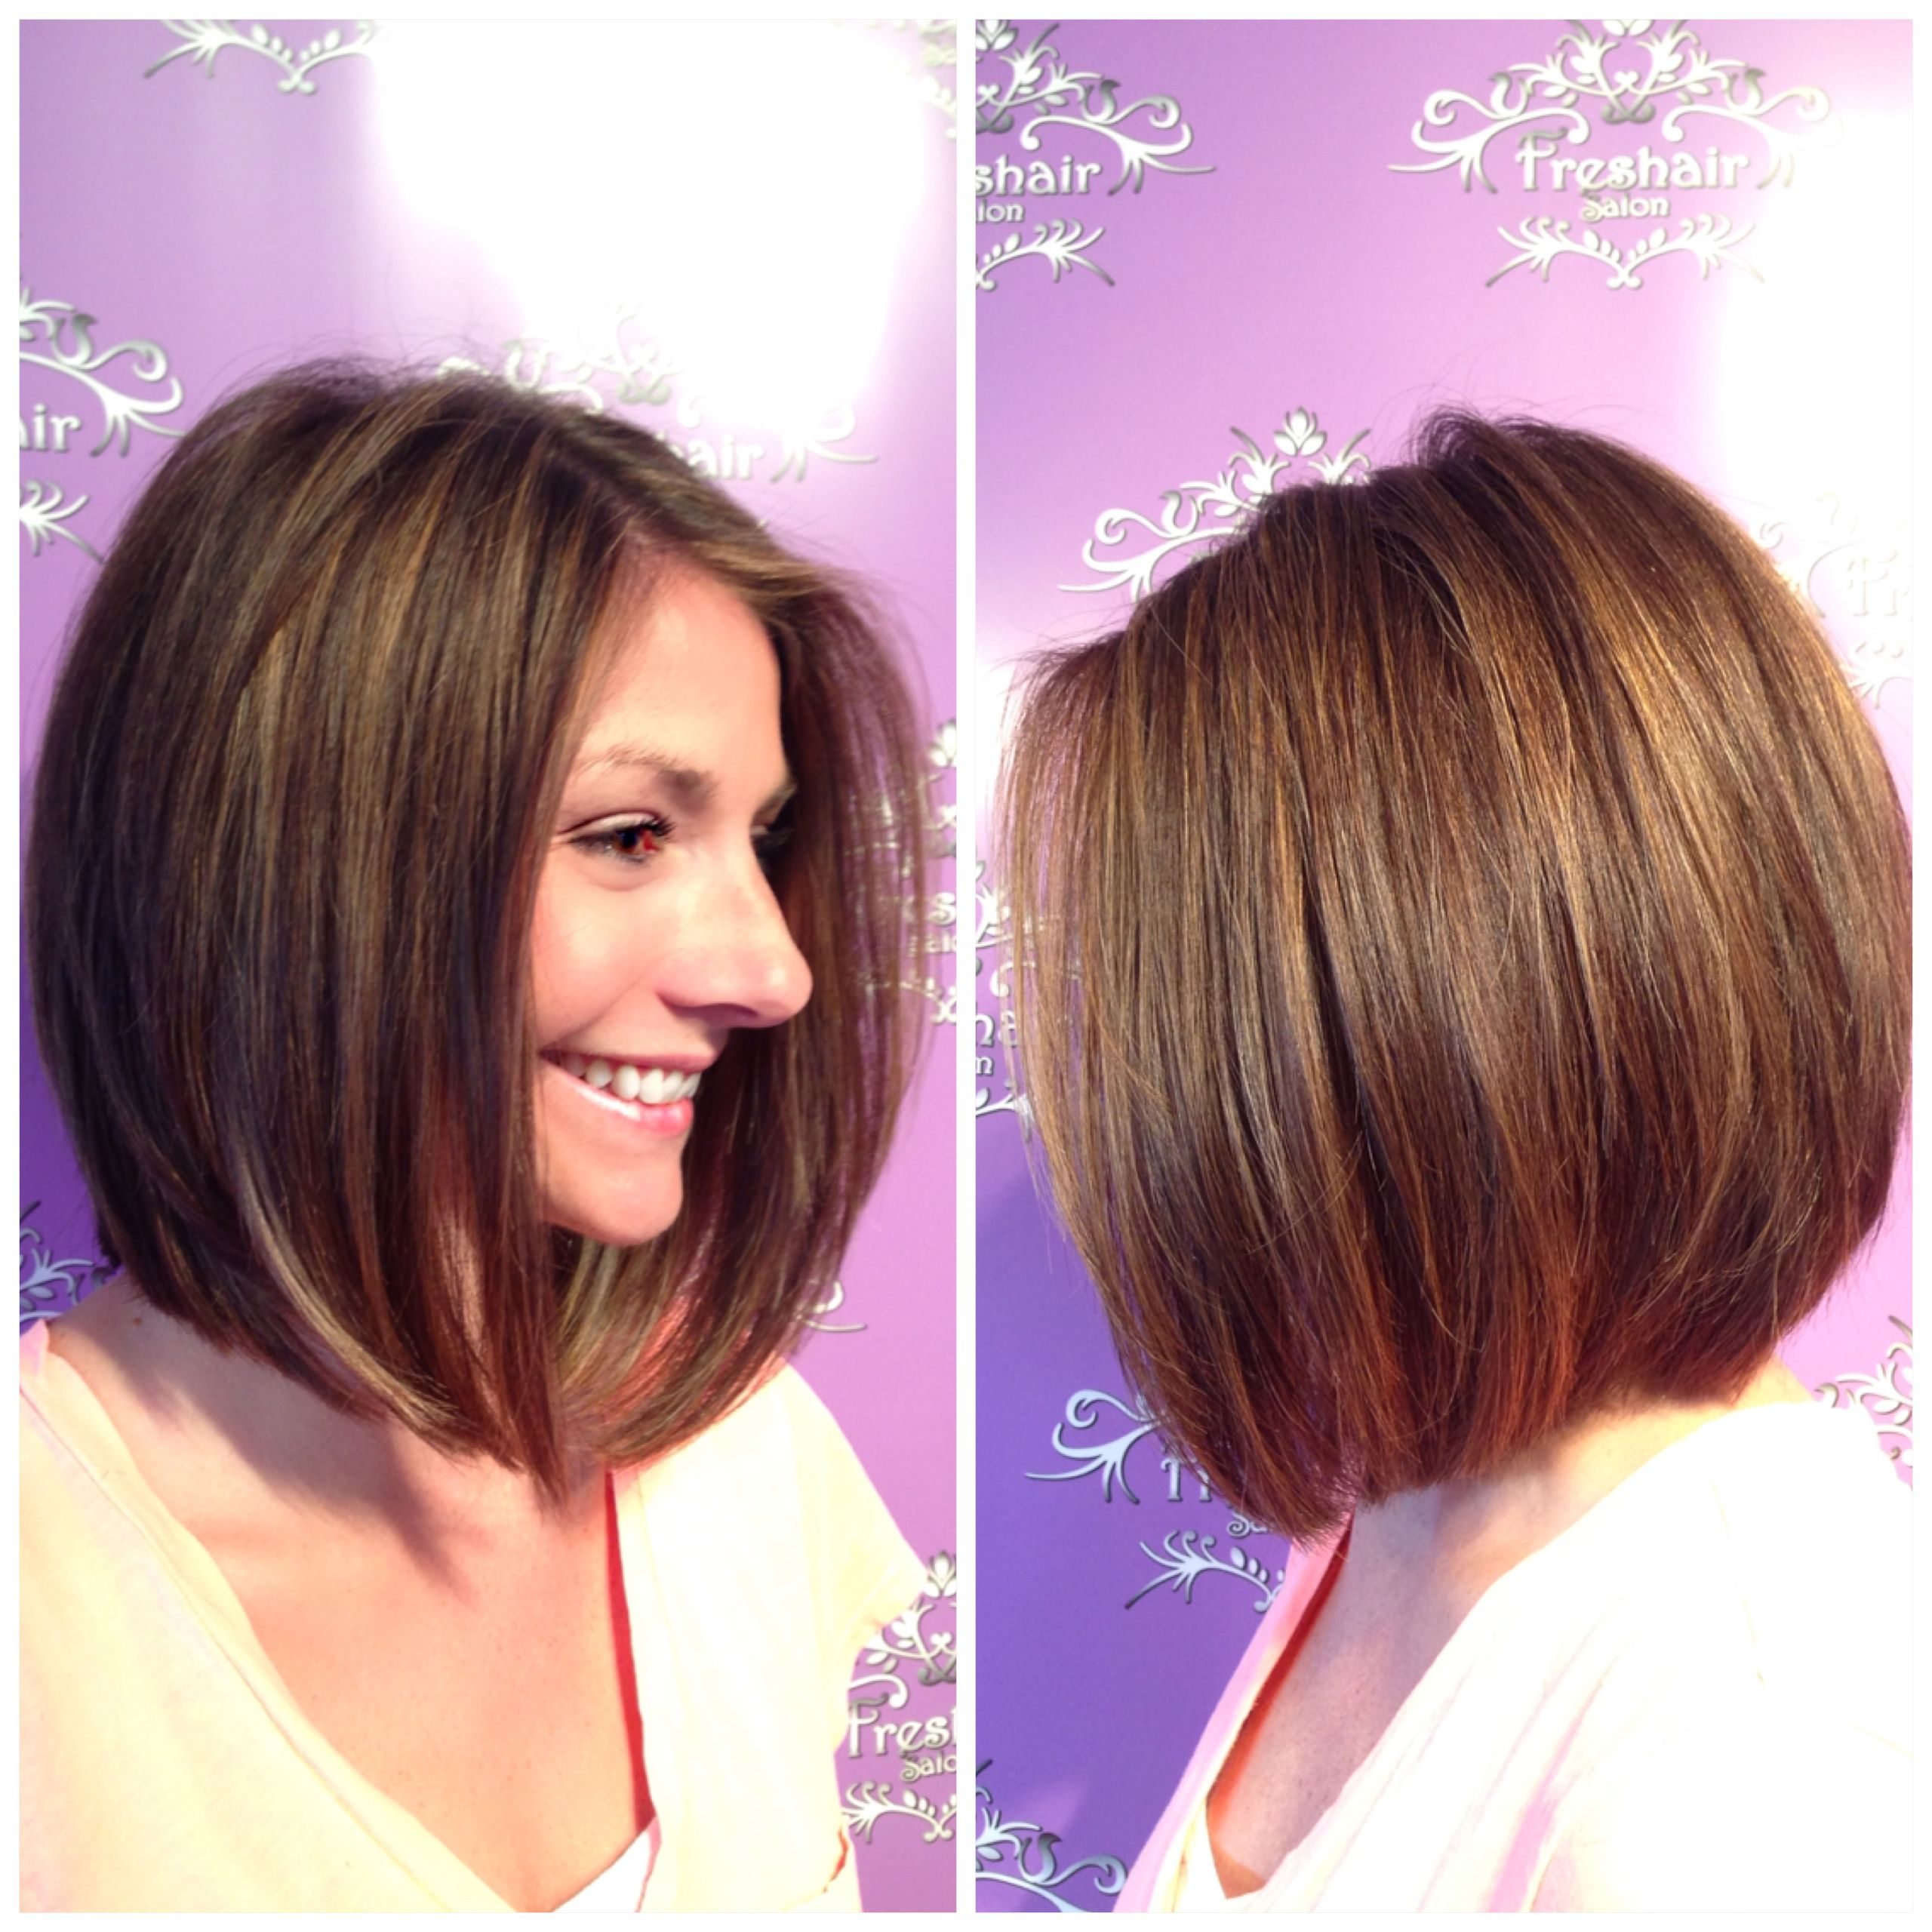 A-line bob with golden highlights and lowlights.